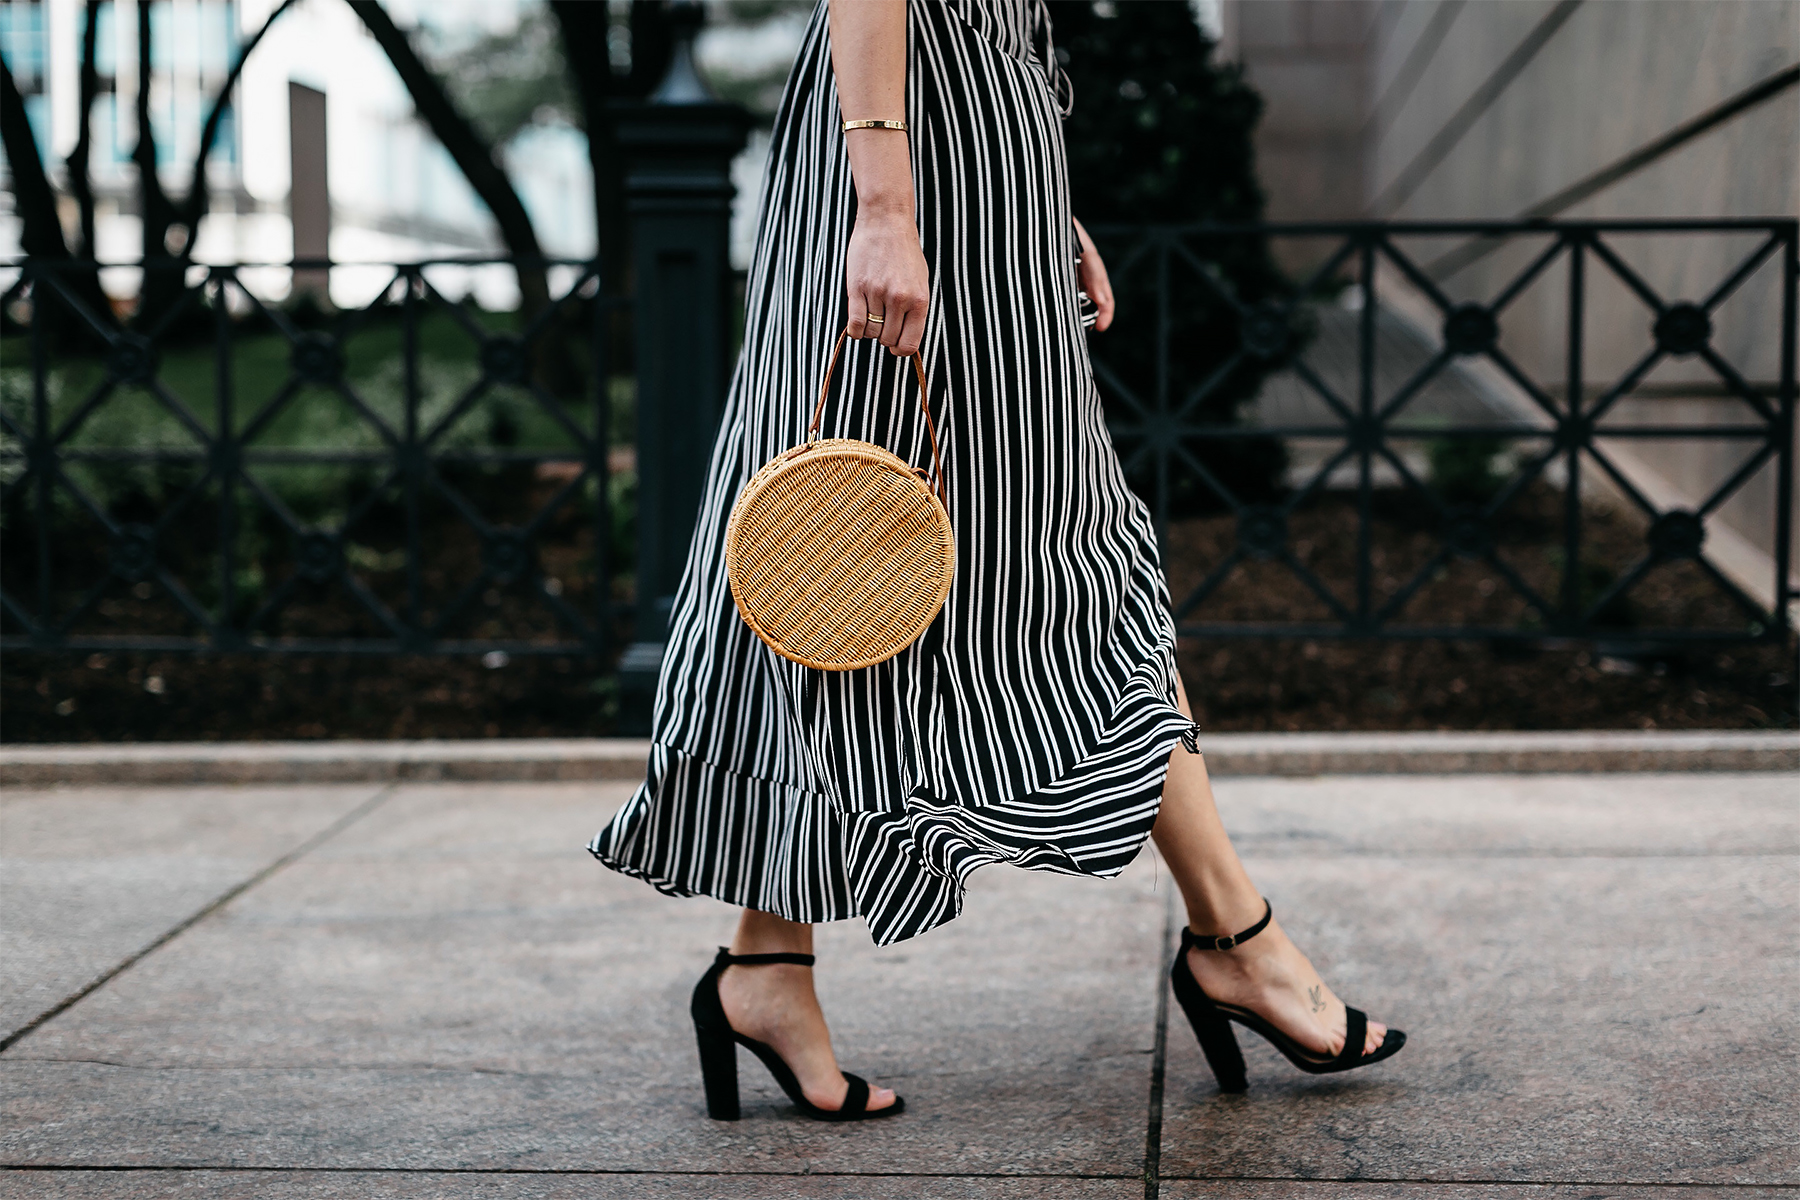 Woman Wearing AQUA Black White Stripe Maxi Dress Circle Straw Basket Handbag Black Ankle Strap Heeled Sandals Fashion Jackson Dallas Blogger Fashion Blogger Street Style